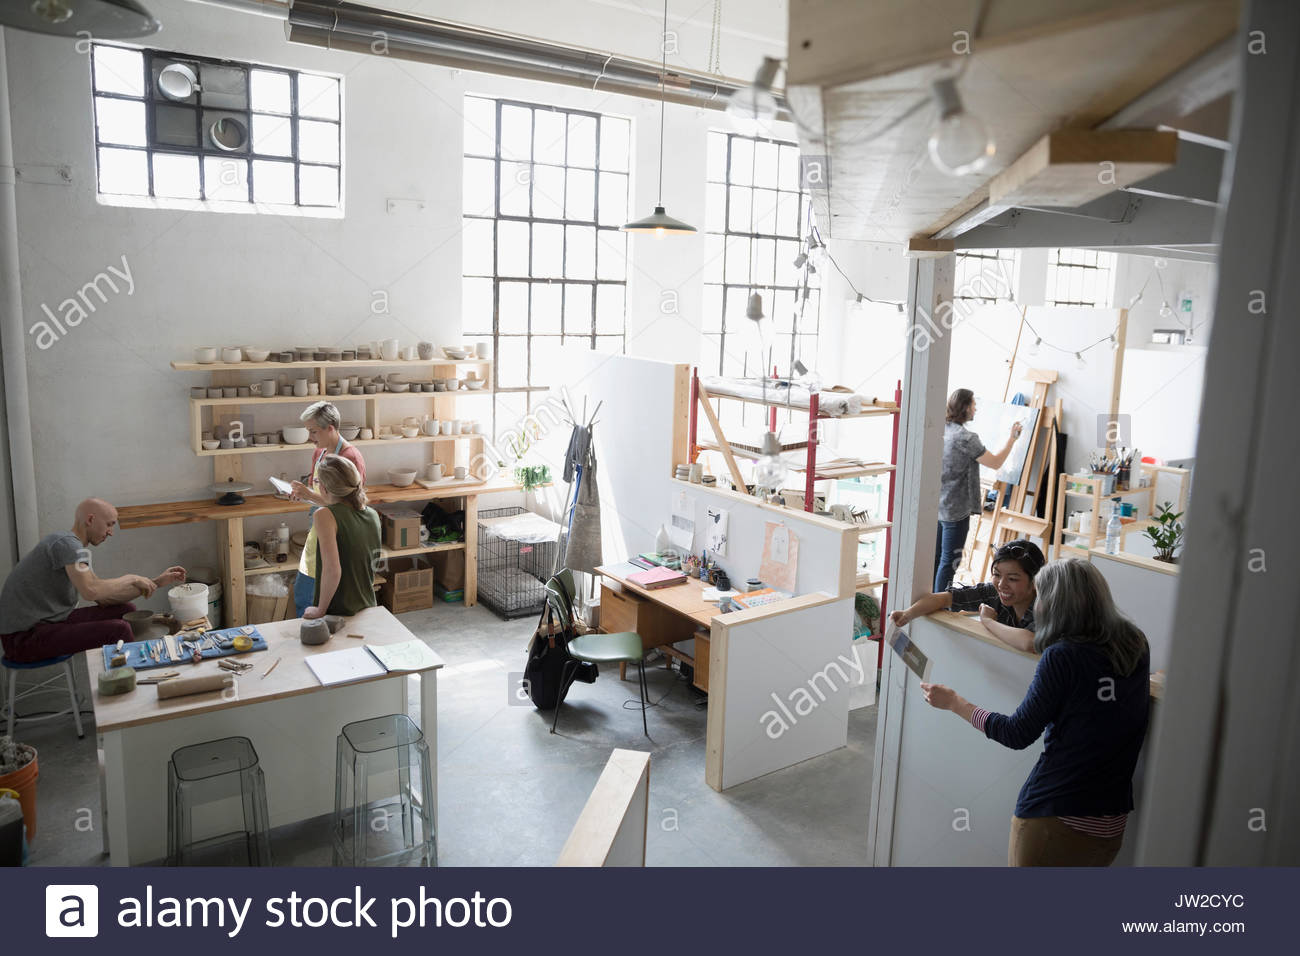 Artists painting, talking and using pottery wheel in coworking space art studio - Stock Image